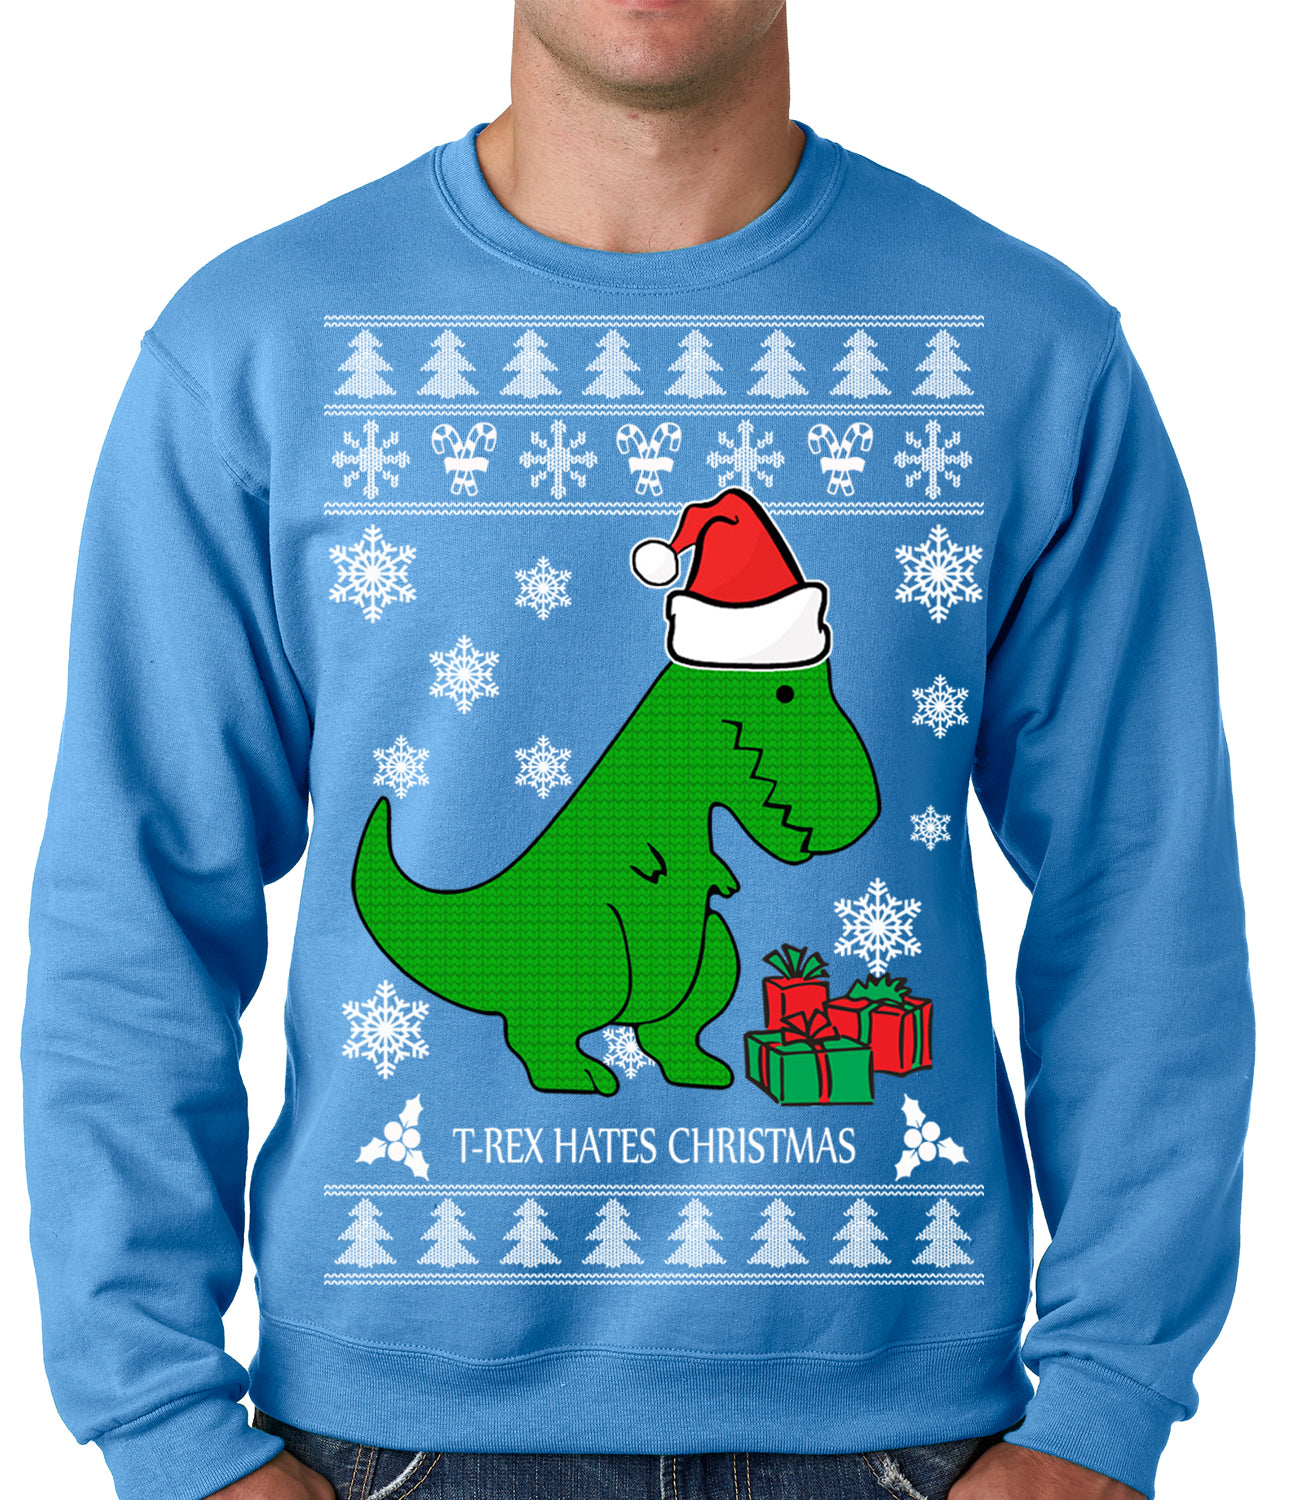 T-Rex Hates Christmas - Ugly Christmas Sweater Adult ...